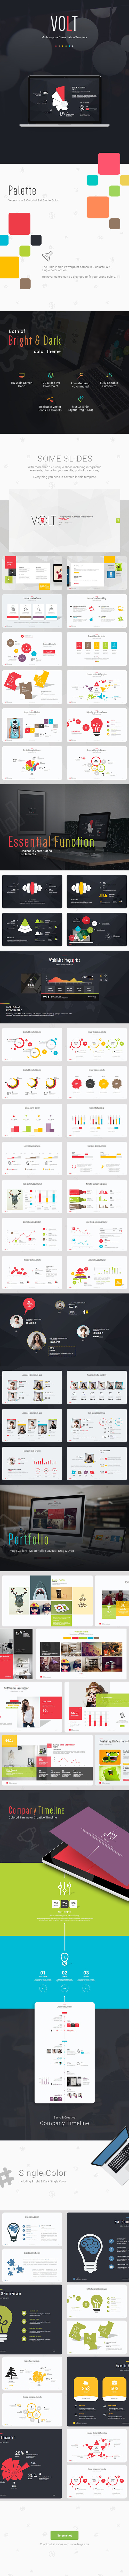 GraphicRiver Volt Creativity Template 10810066